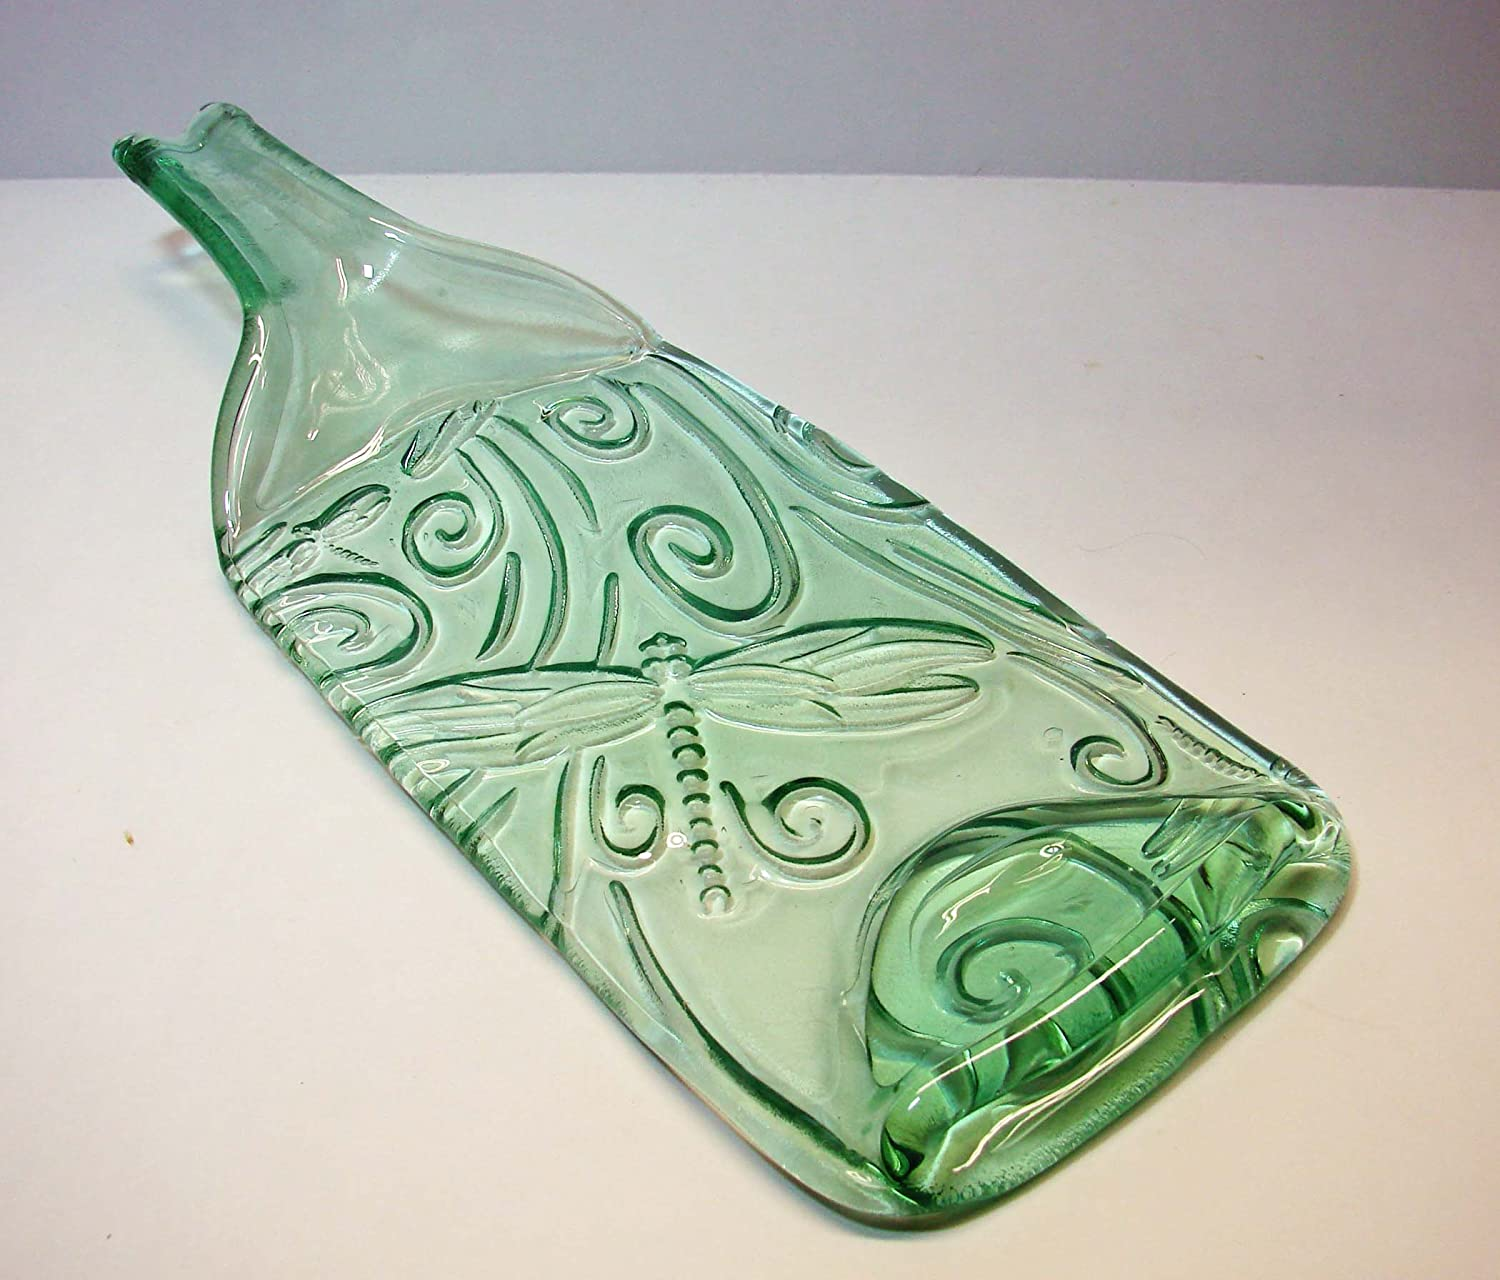 New popularity Dragonfly Embossed Green Ranking TOP16 Tint Wine Neck with Bottle Raised UpCyc